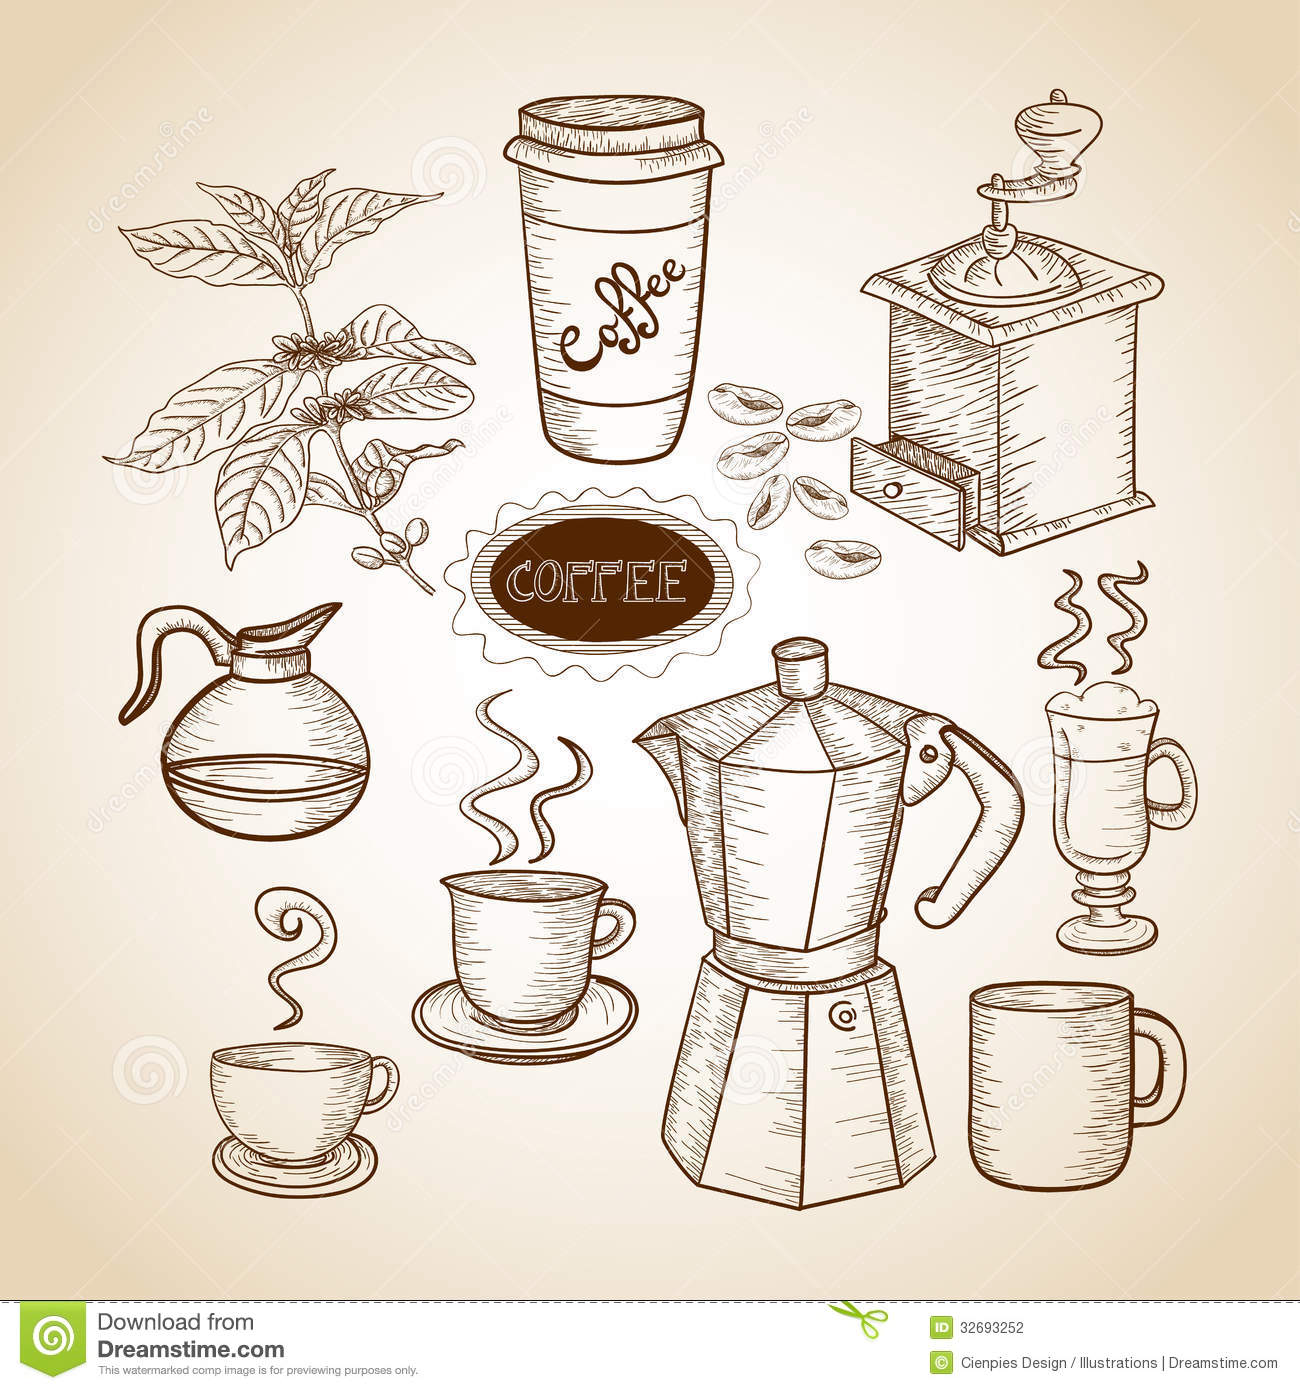 Coffee Grinder Drawling ~ Coffee elements hand drawn illustration stock vector